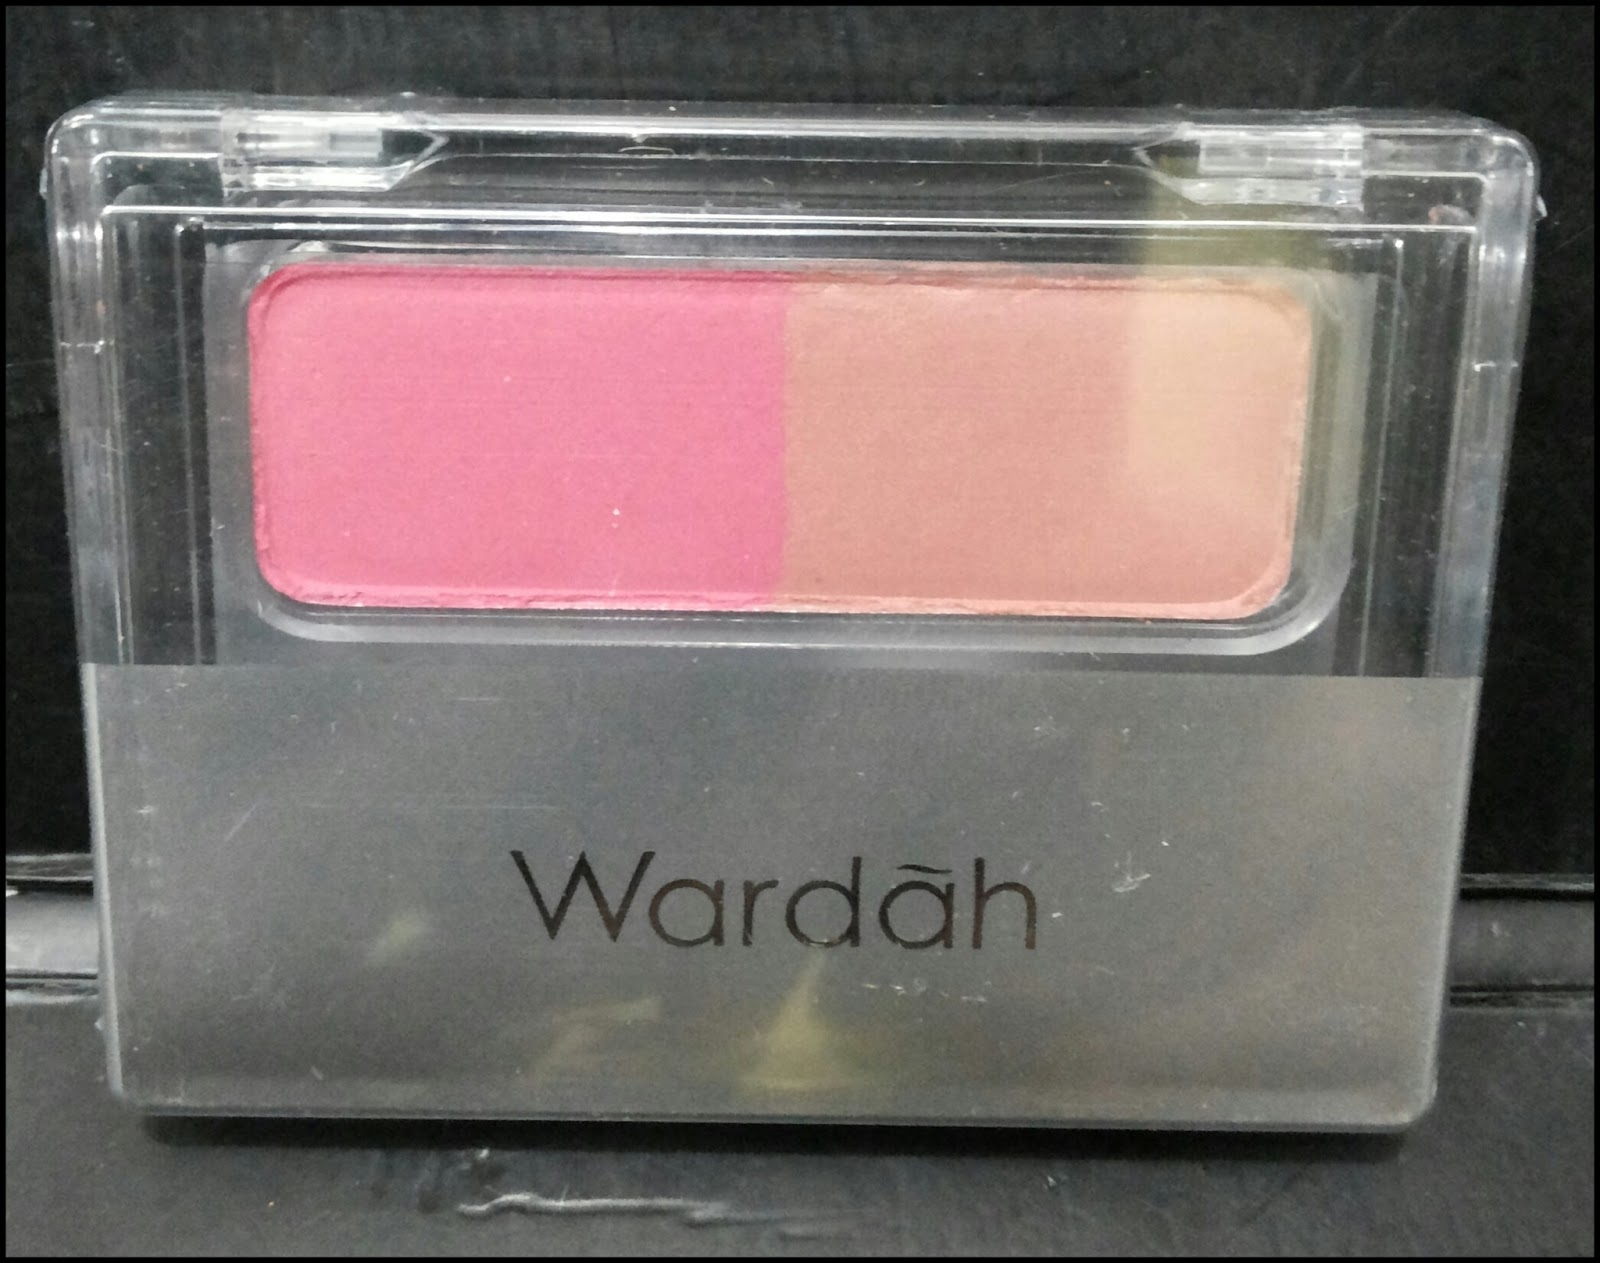 Review Pemakaian Wardah Blush On seri C - Eny Richa Victiari